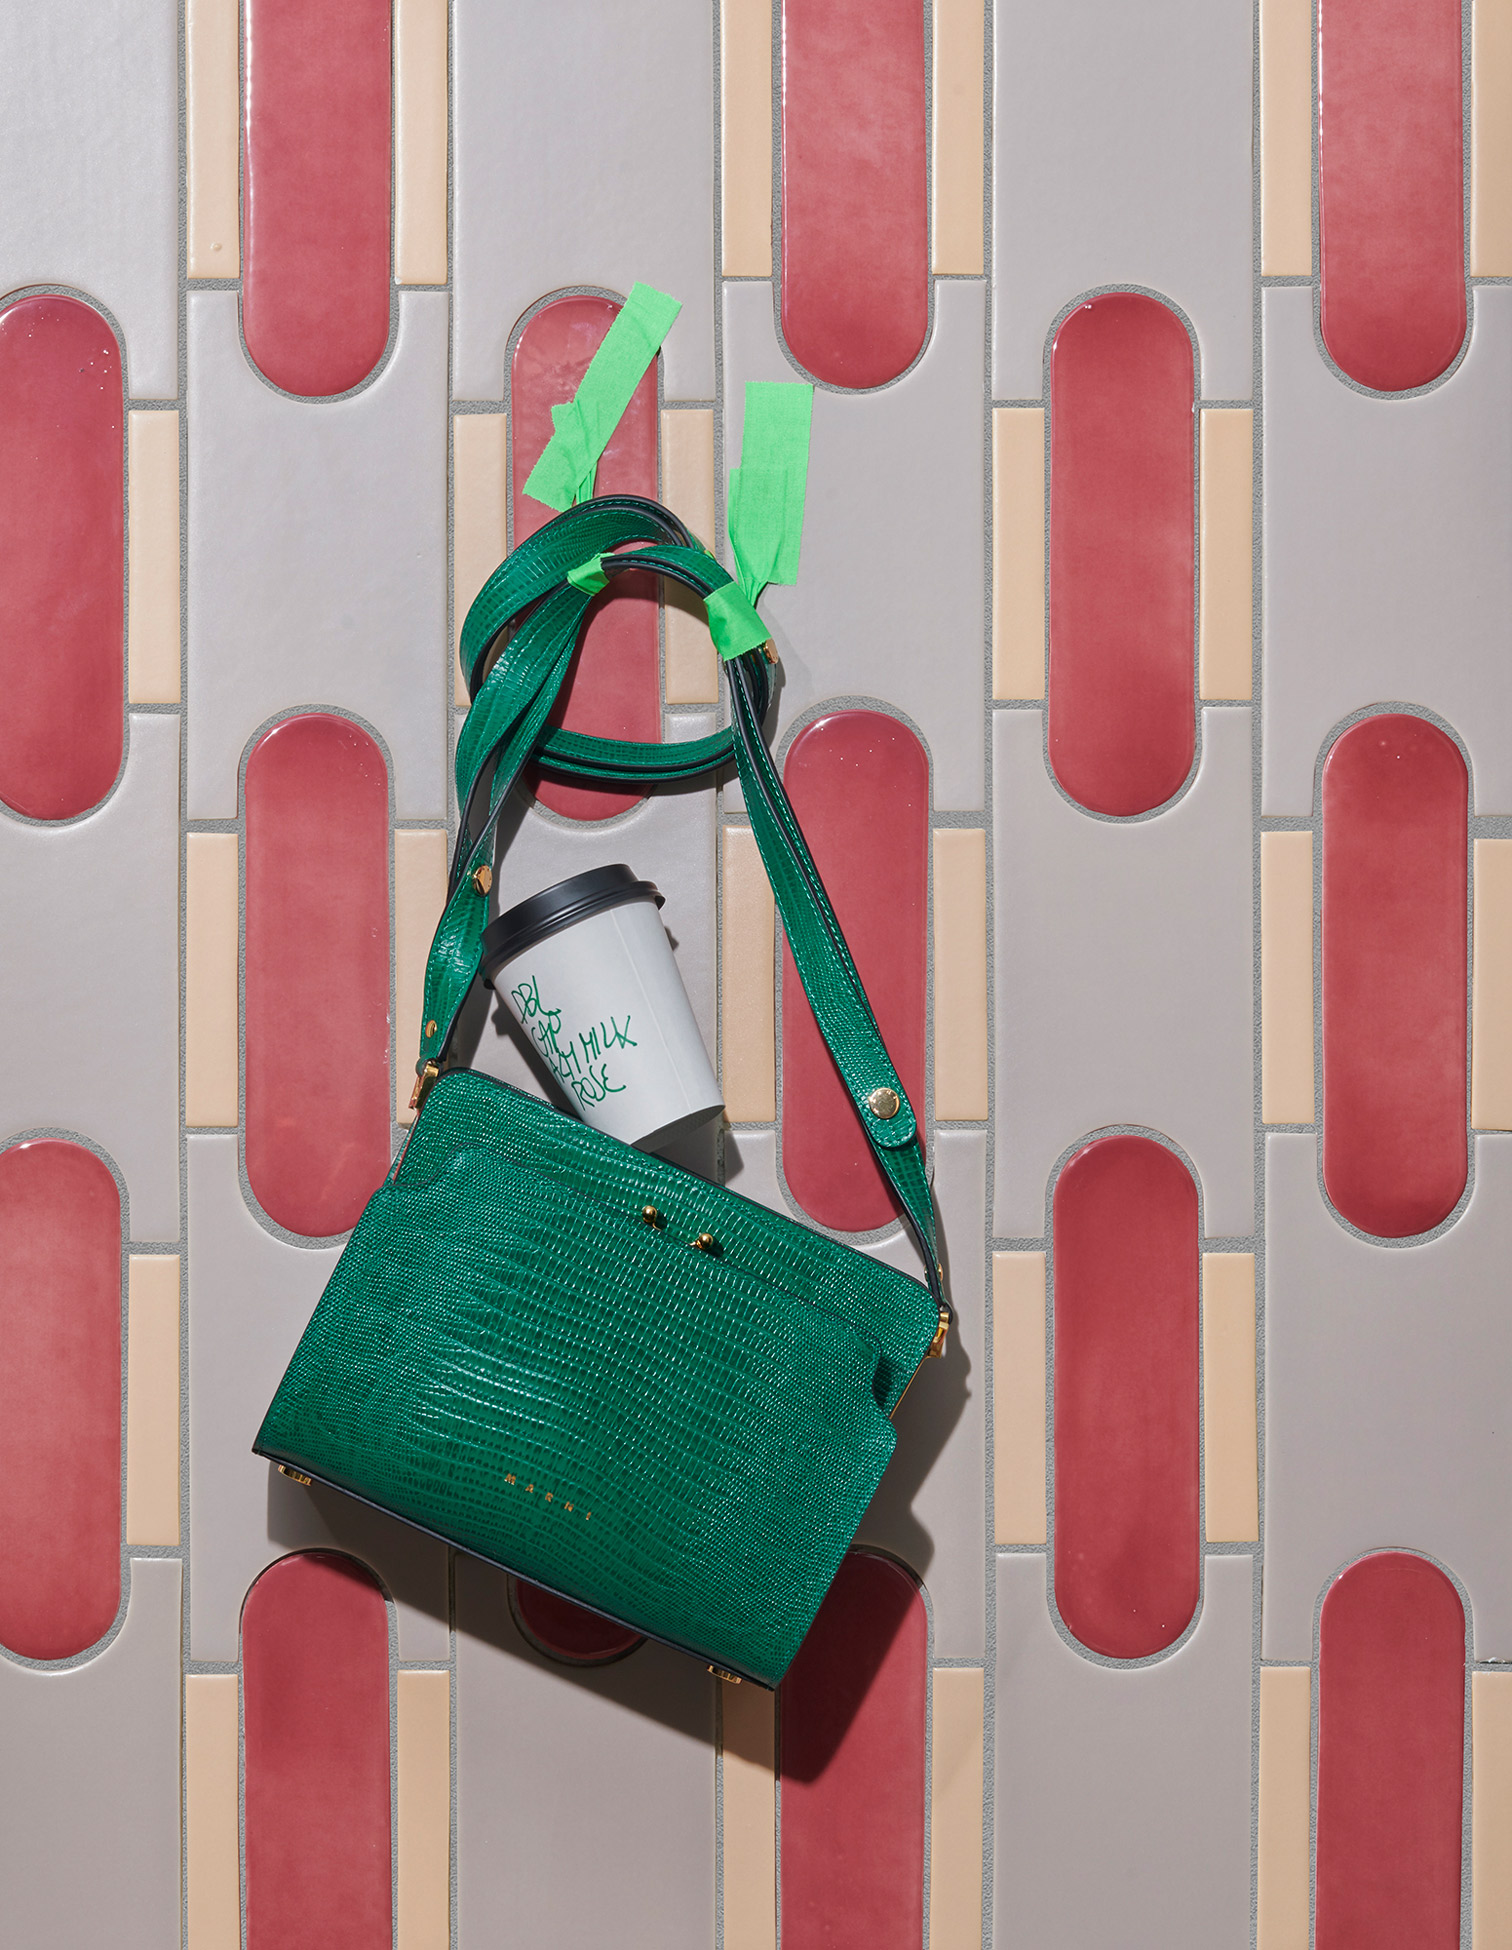 Still Life: Green Bag